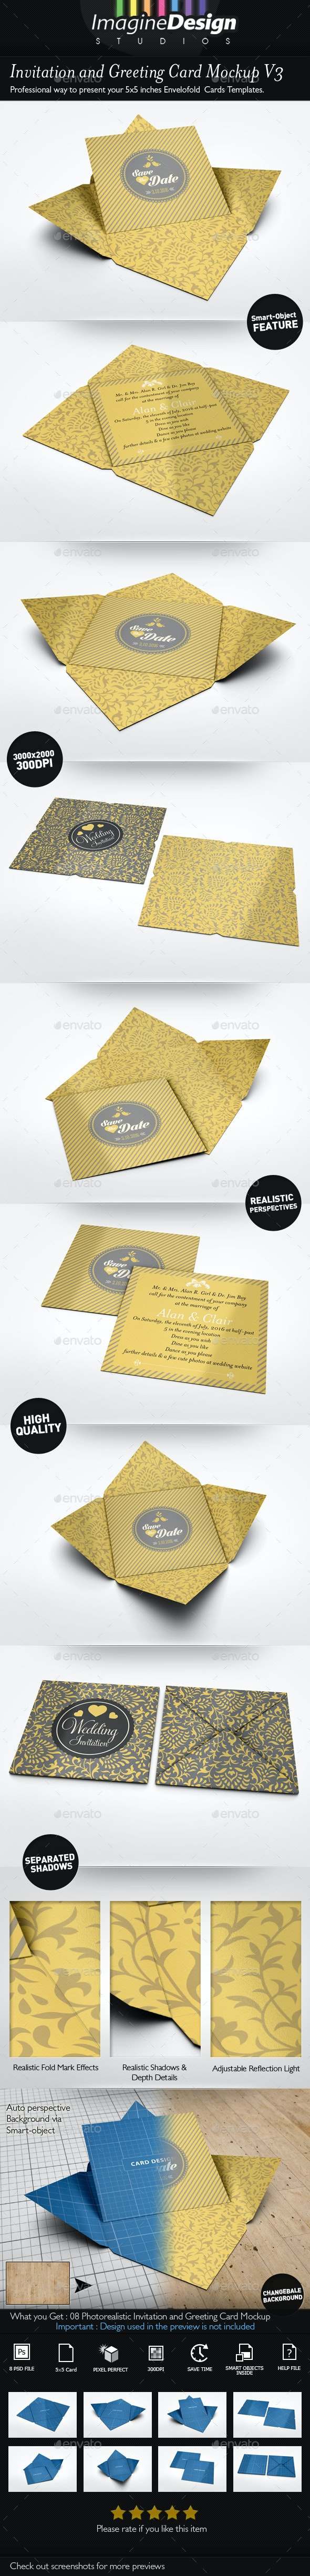 Invitation and Greeting Card Mockup V3 - Miscellaneous Print